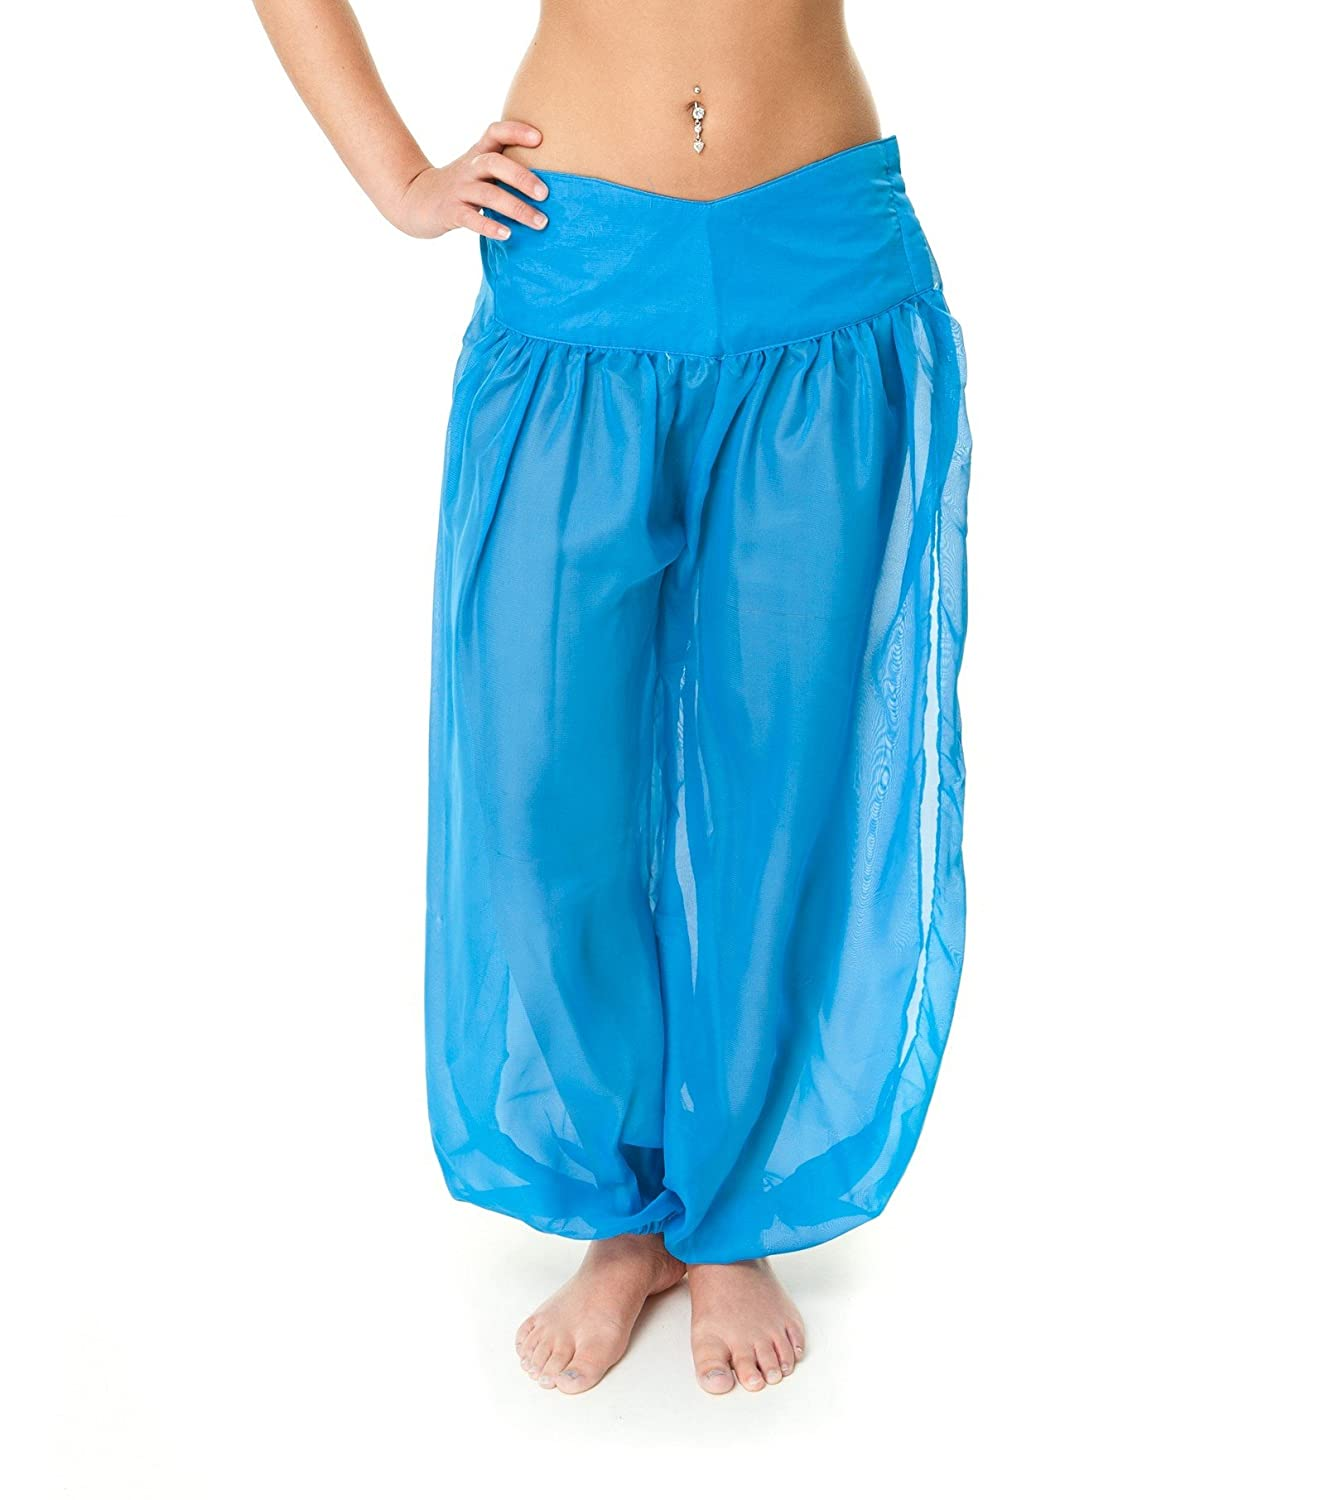 The Turkish Emporium SAROUEL PANTALON DANSE ORIENTALE bollywood DANSE DU  VENTRE Aladin Hippie Ethnique Yoga (Blanc) Amazon.fr Vêtements et  accessoires